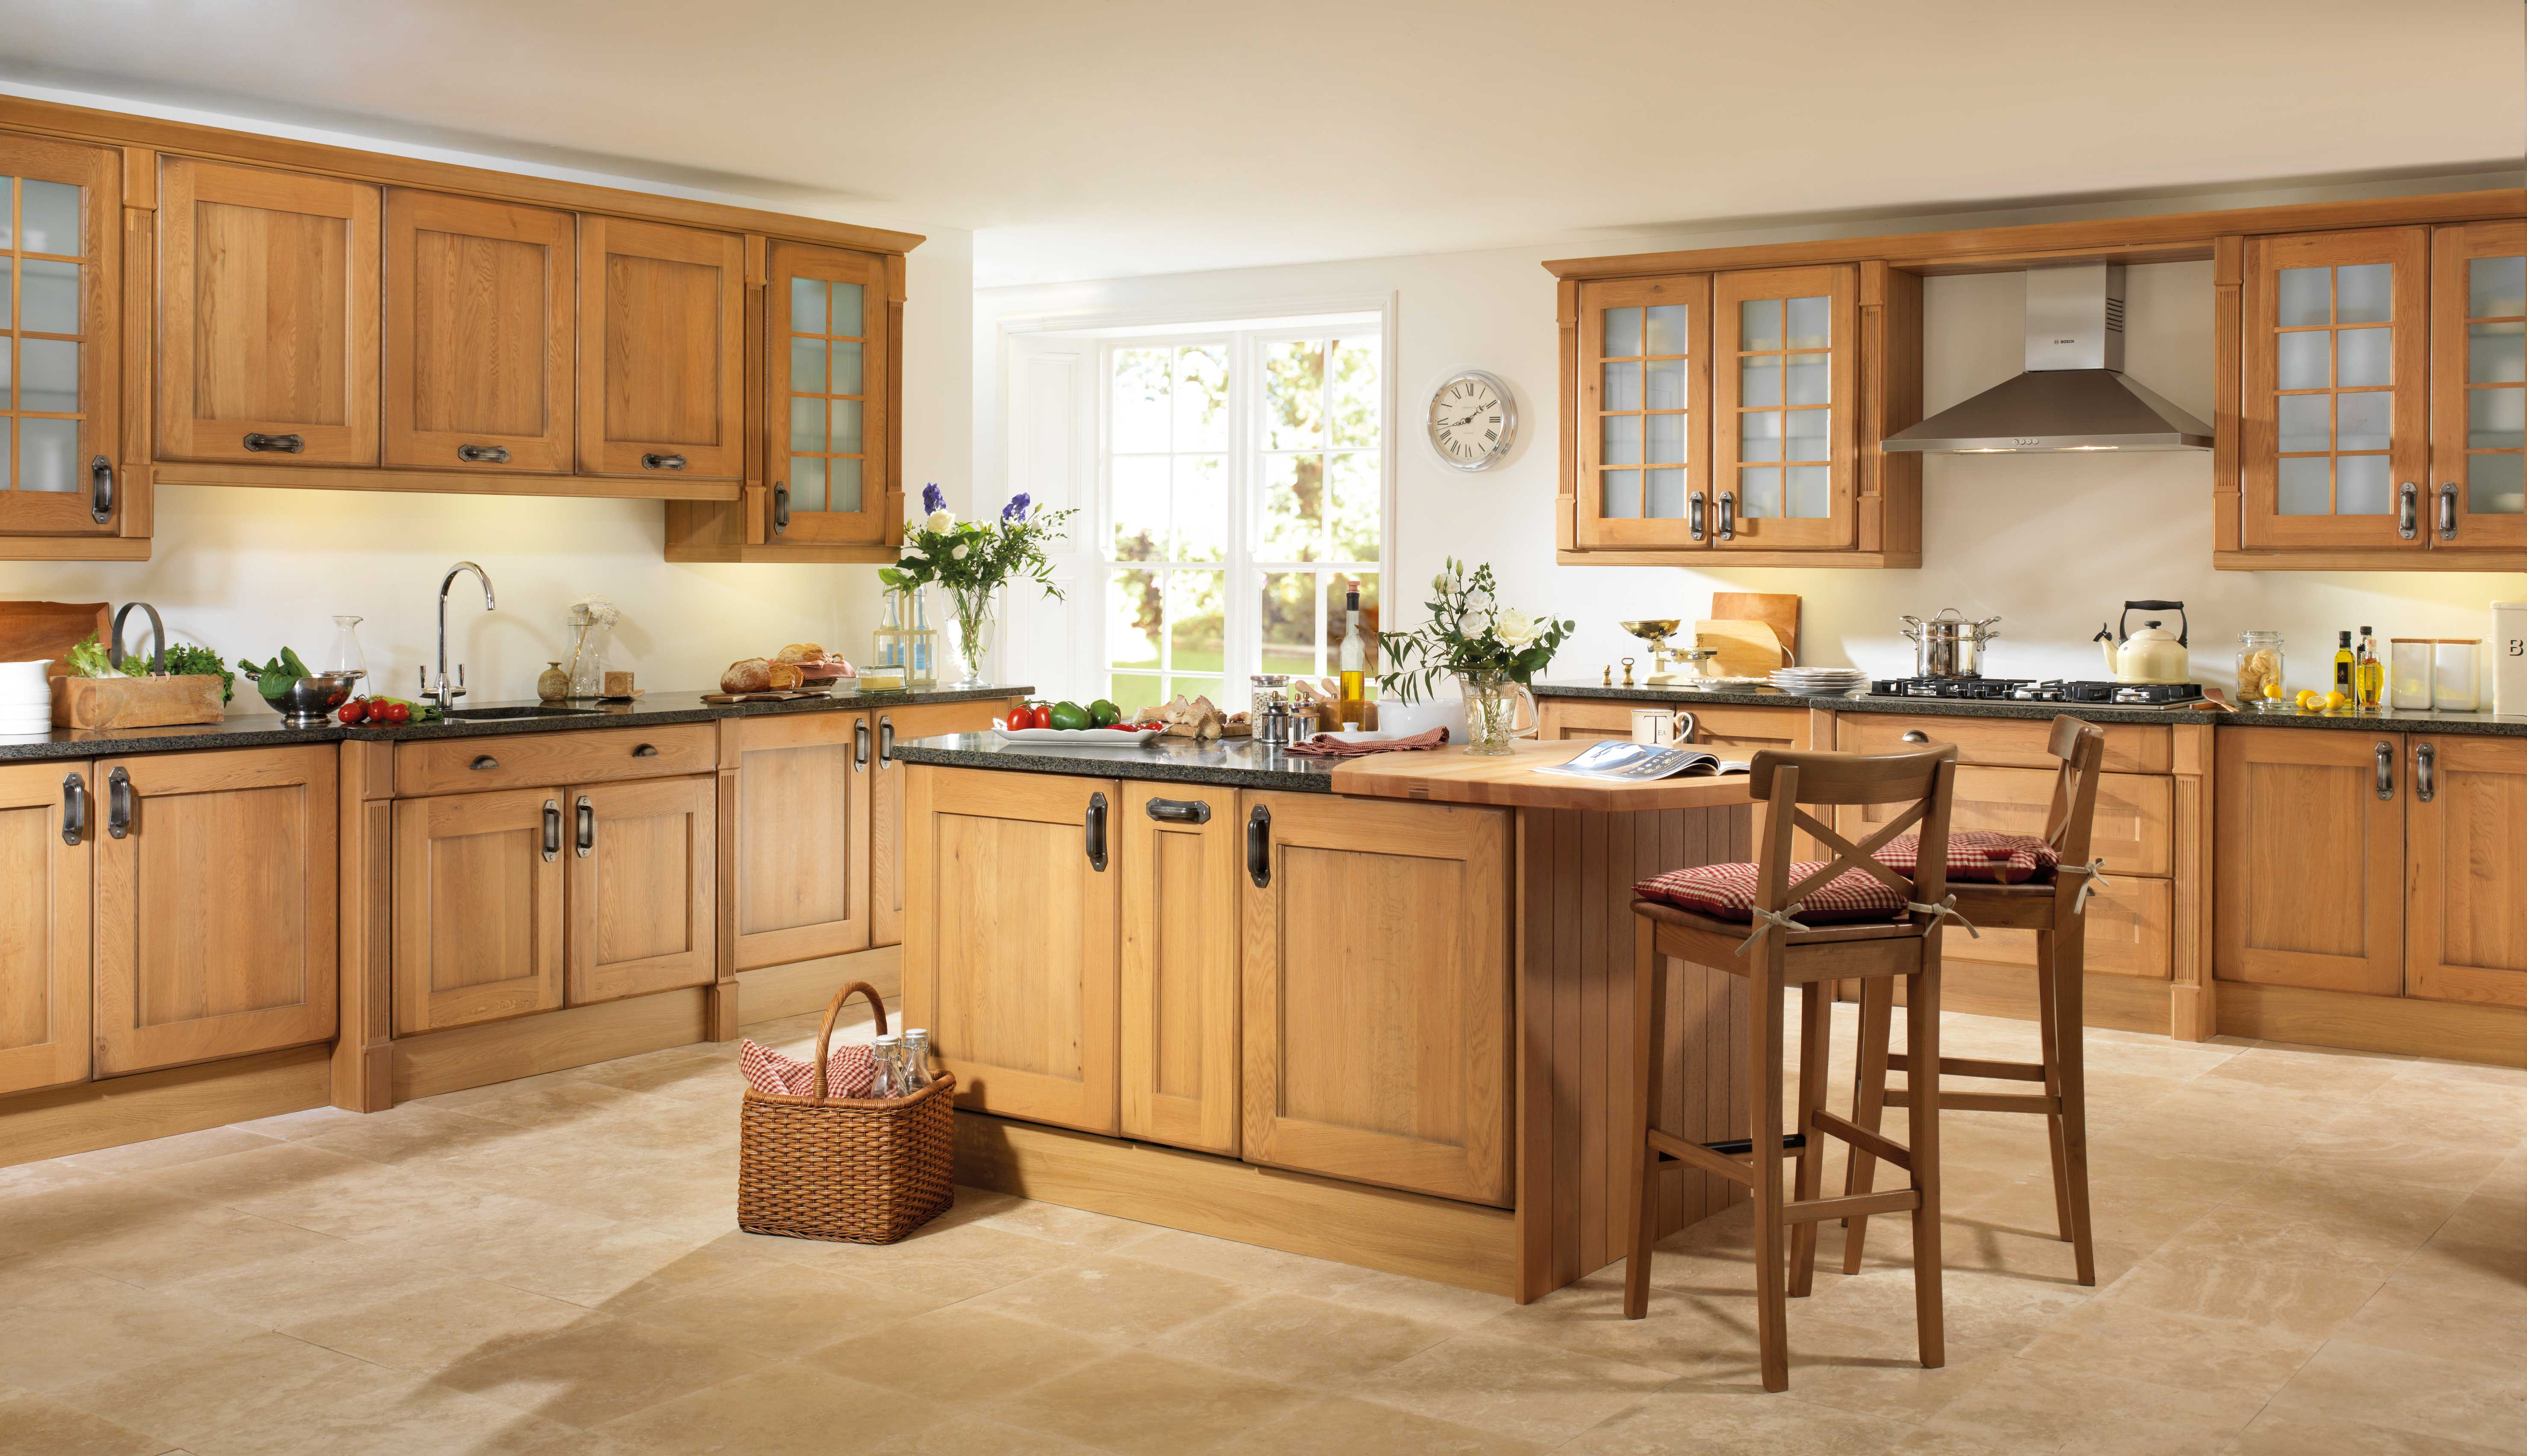 best way to degrease kitchen cabinets how to degrease kitchen cabinets fresh uncategorized best 12245